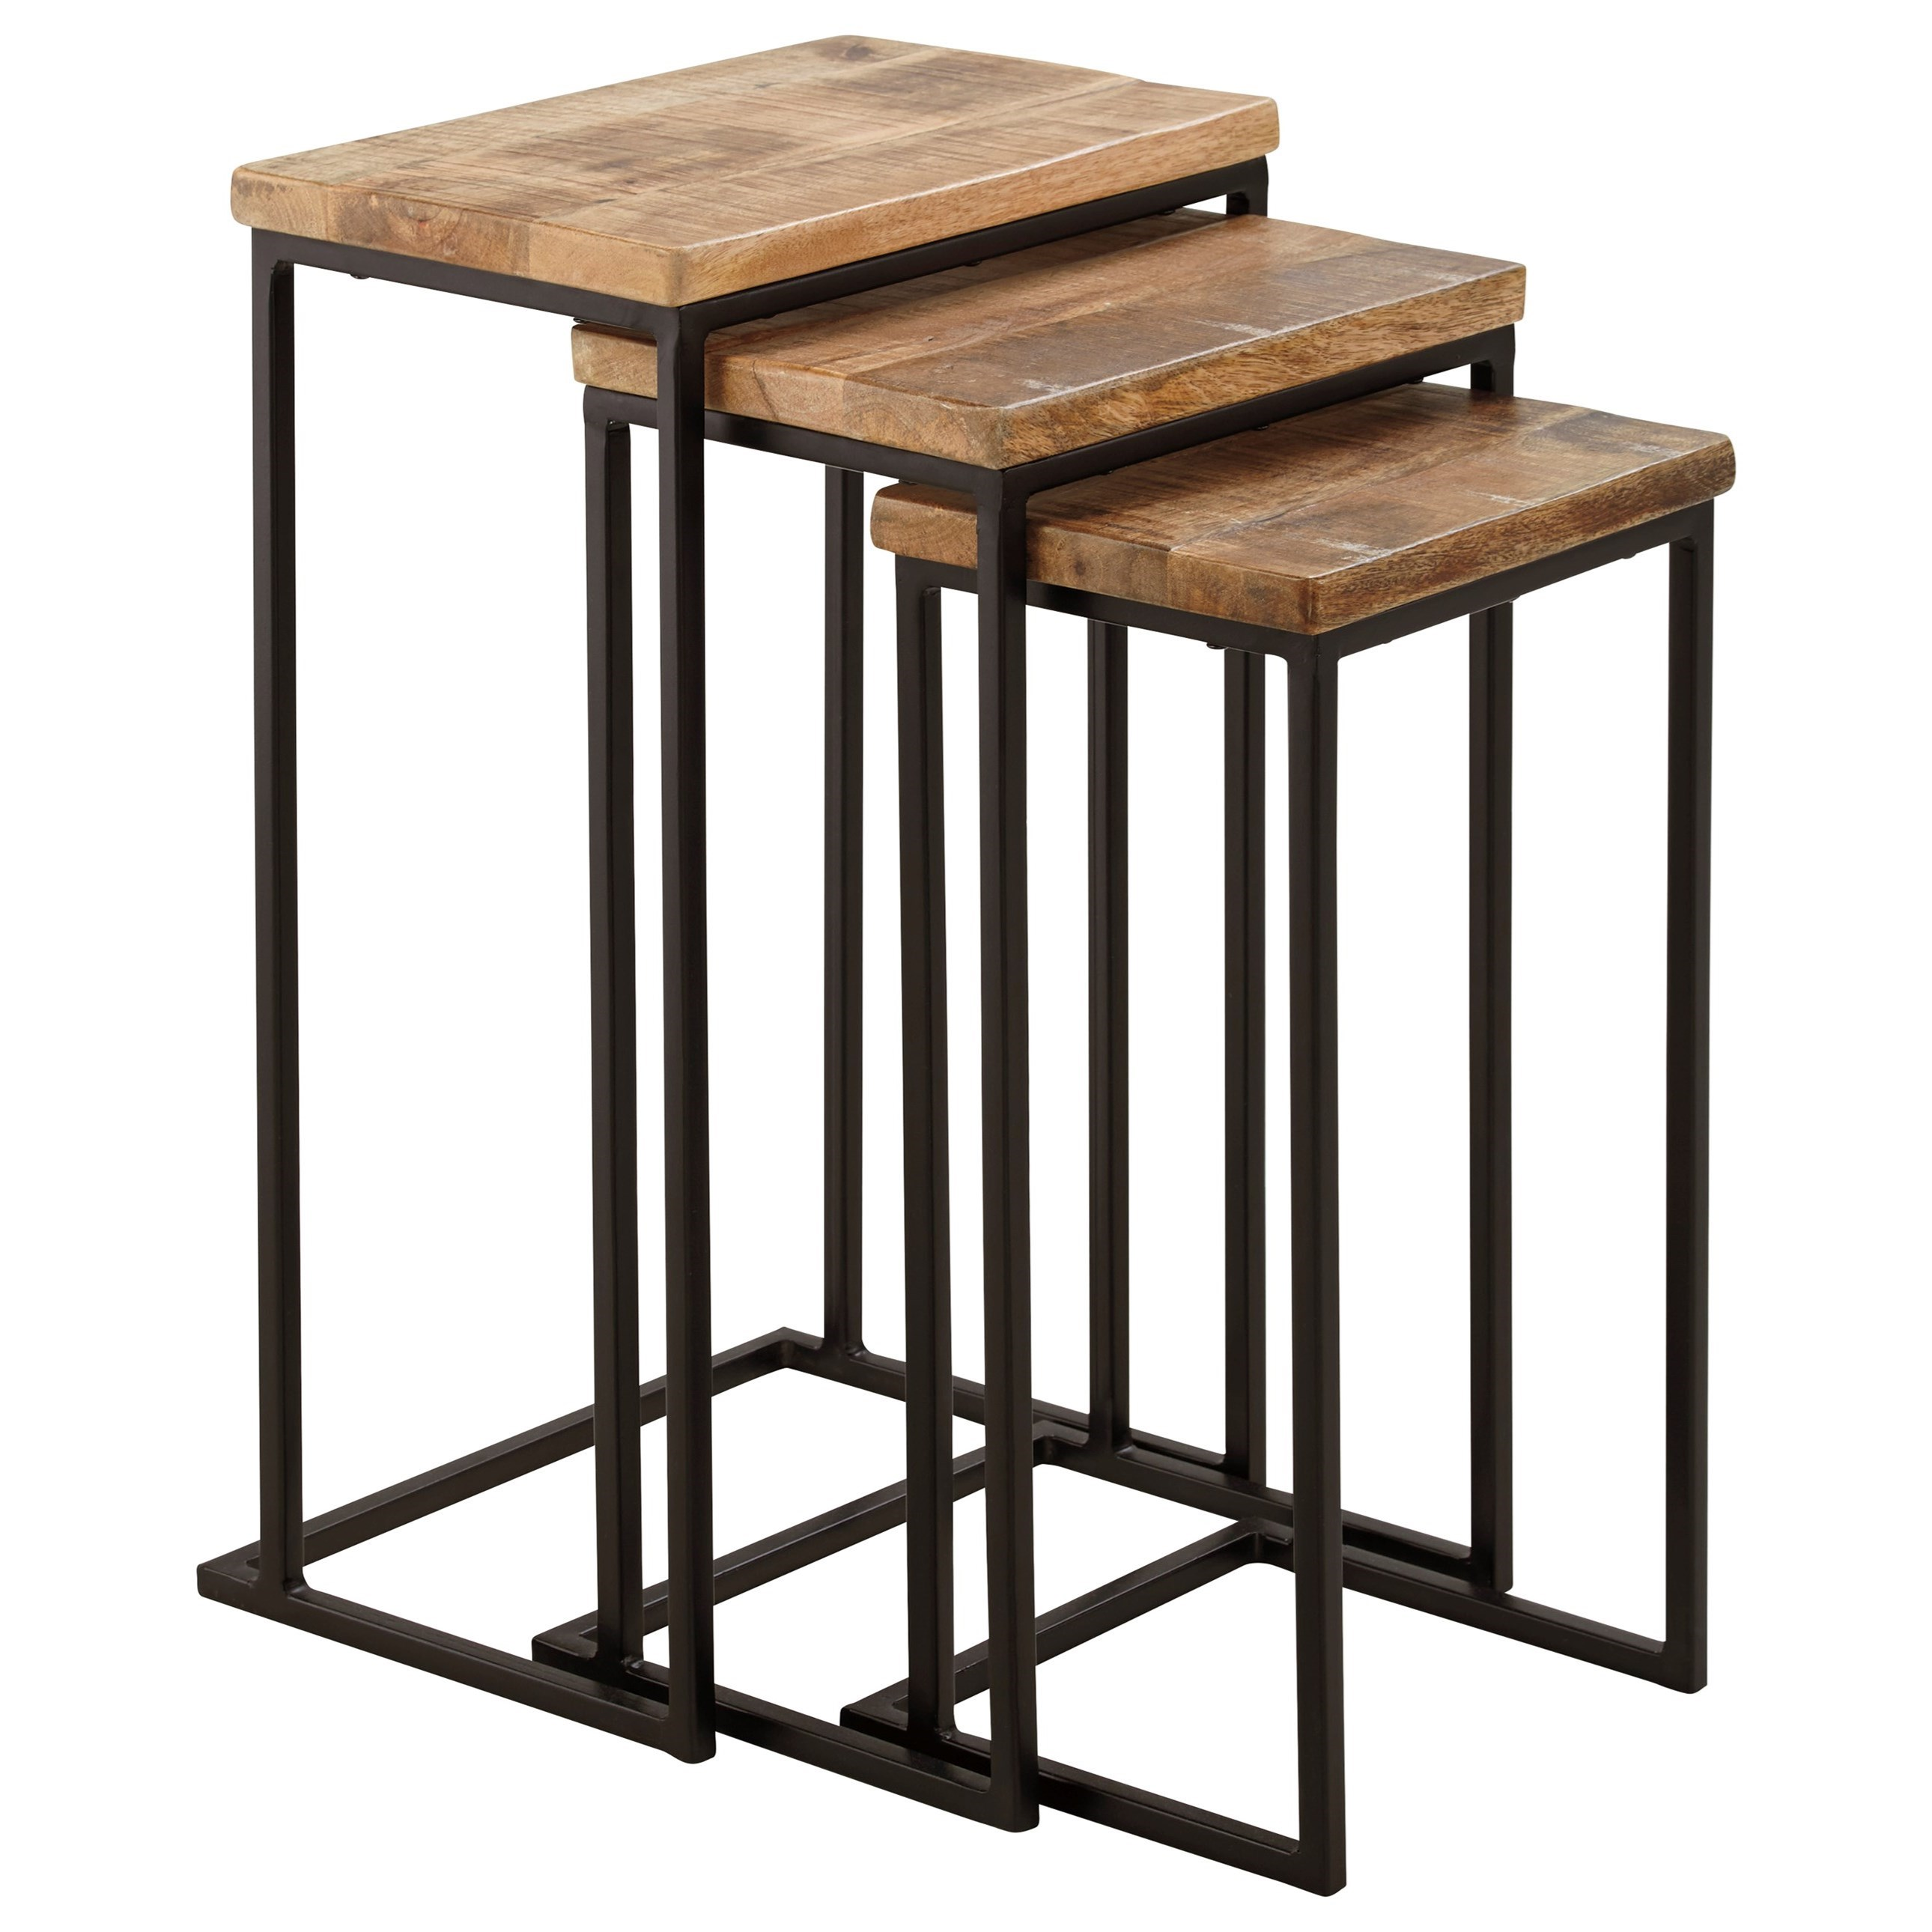 Signature Design by Ashley Marxim Nesting End Tables - Item Number: T506-316